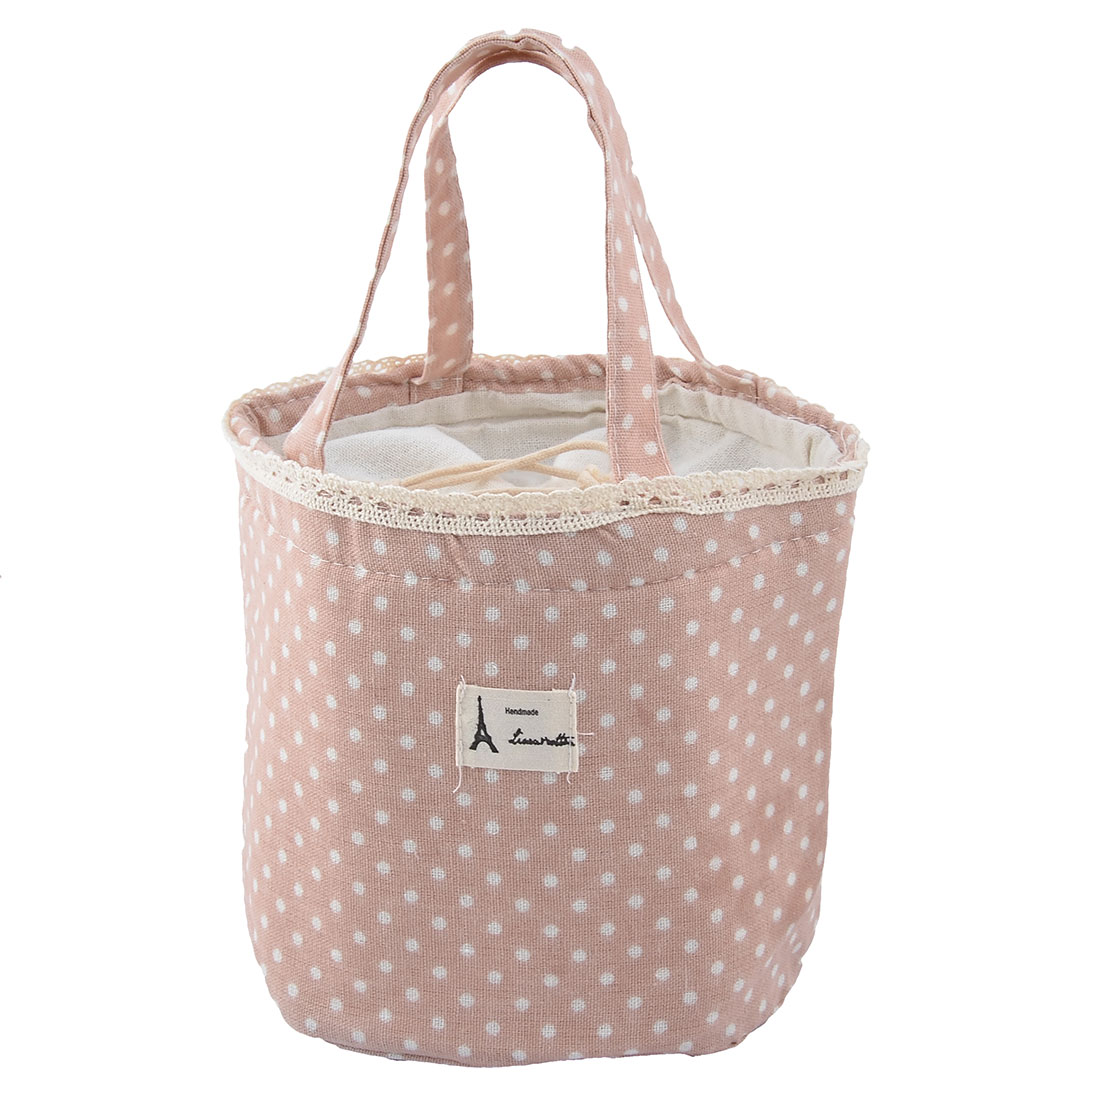 Cotton Linen Picnic Thermal Insulated Aluminum Foil Lunch Bag Cooler Tote